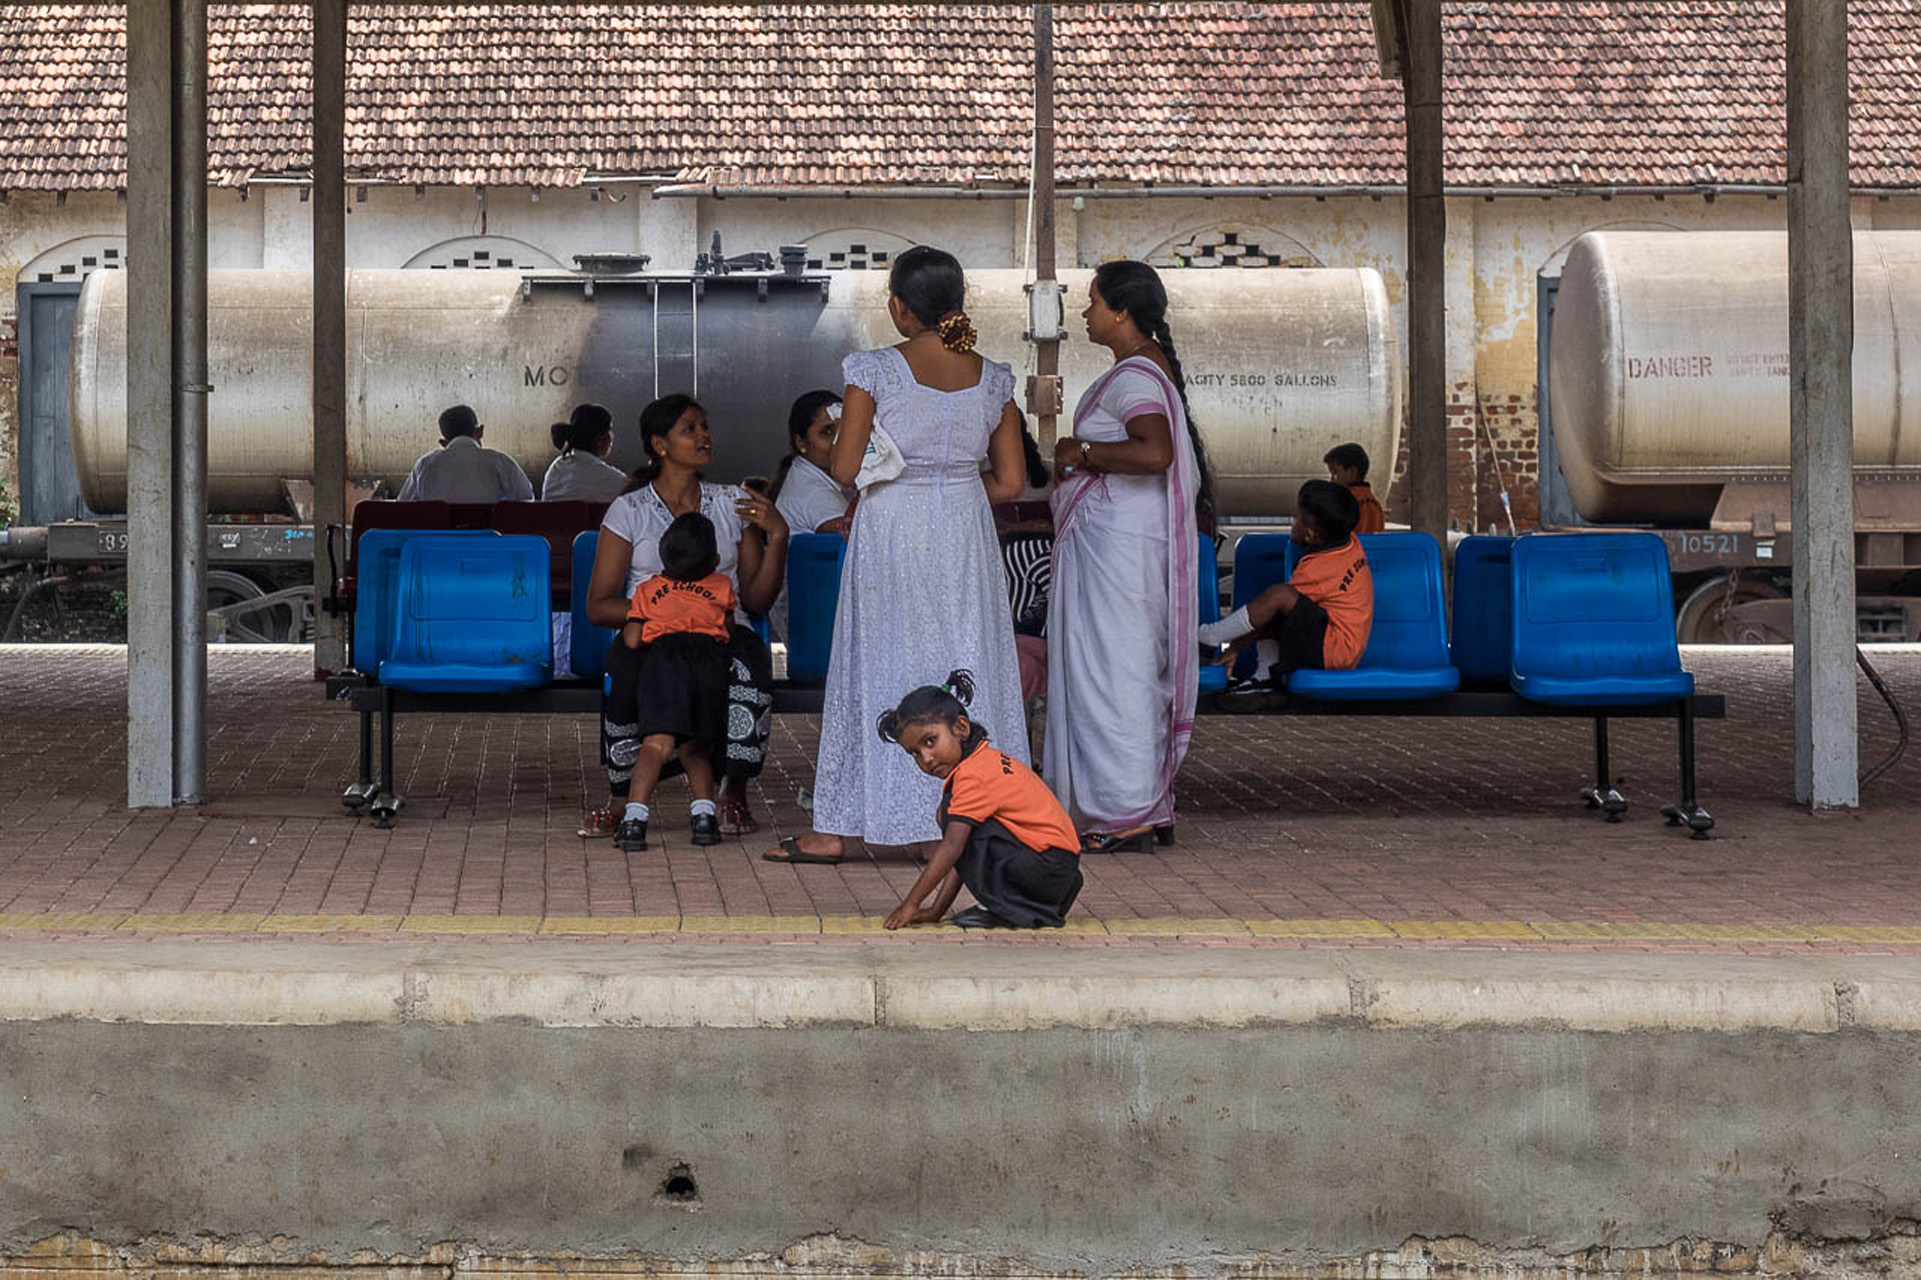 Waiting for the Train, Anuradhapura, Sri Lanka